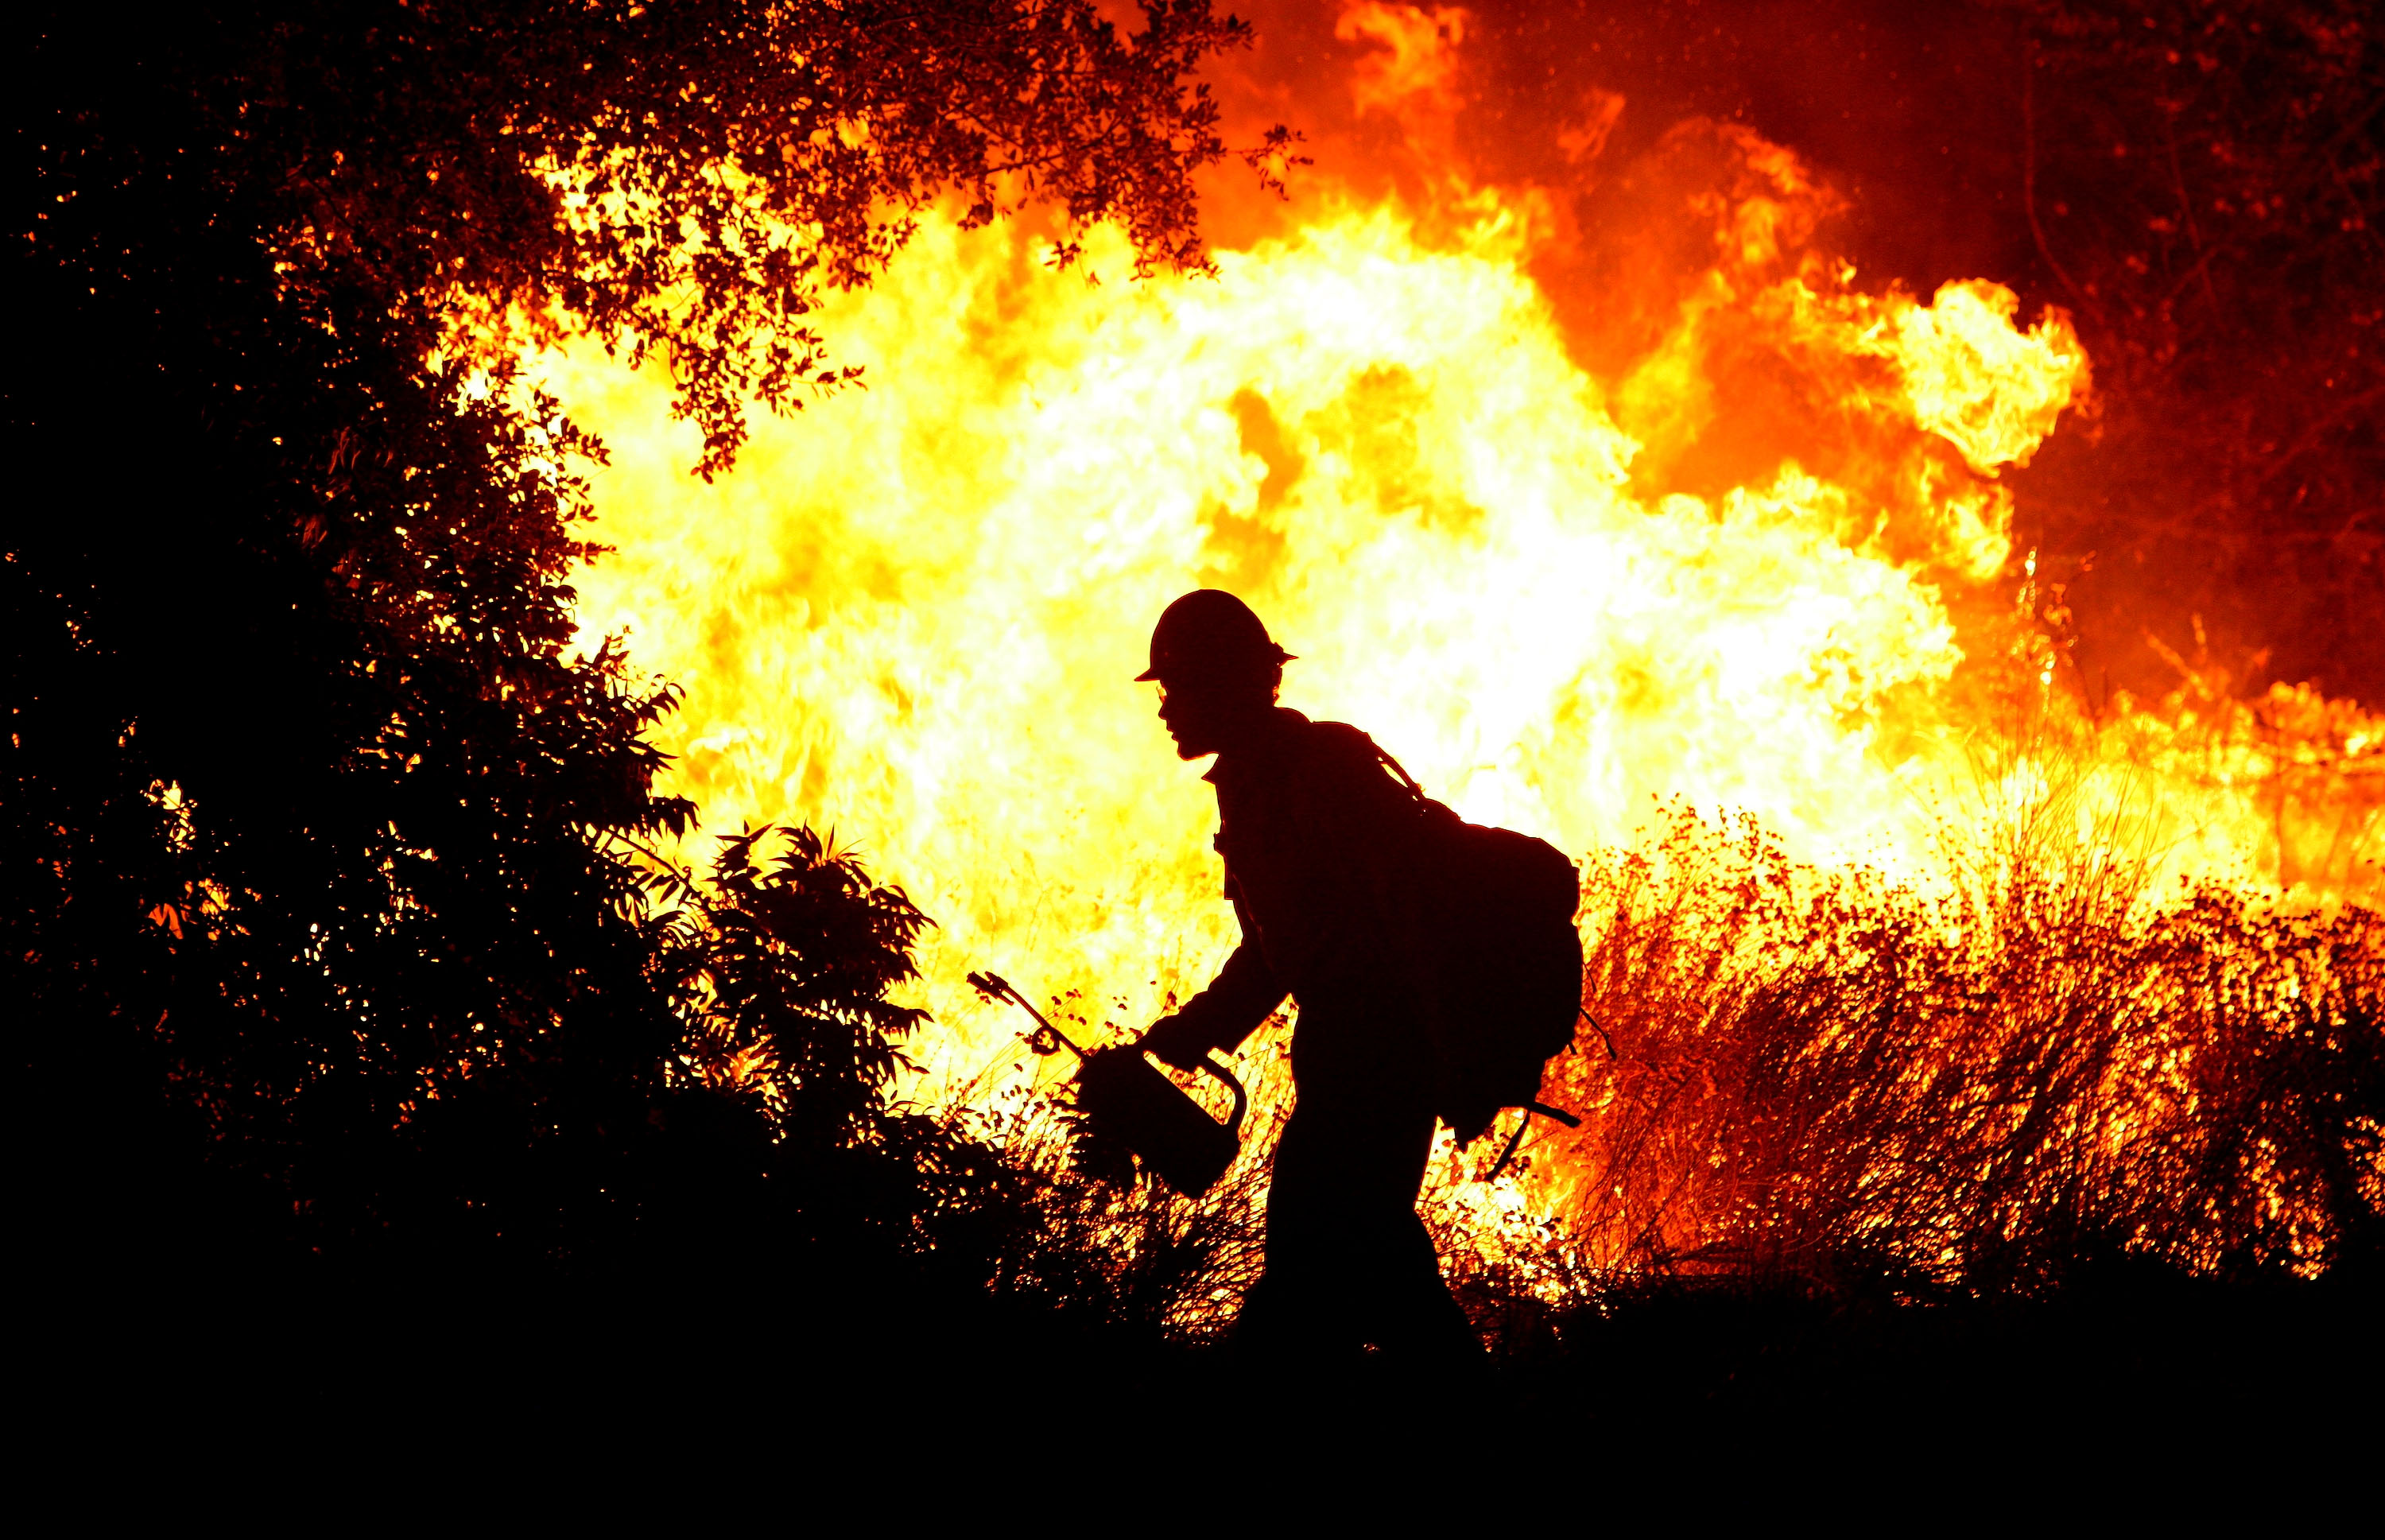 A firefighter uses a drip torch to light a back fire August 31, 2009 in La Crescenta, California.